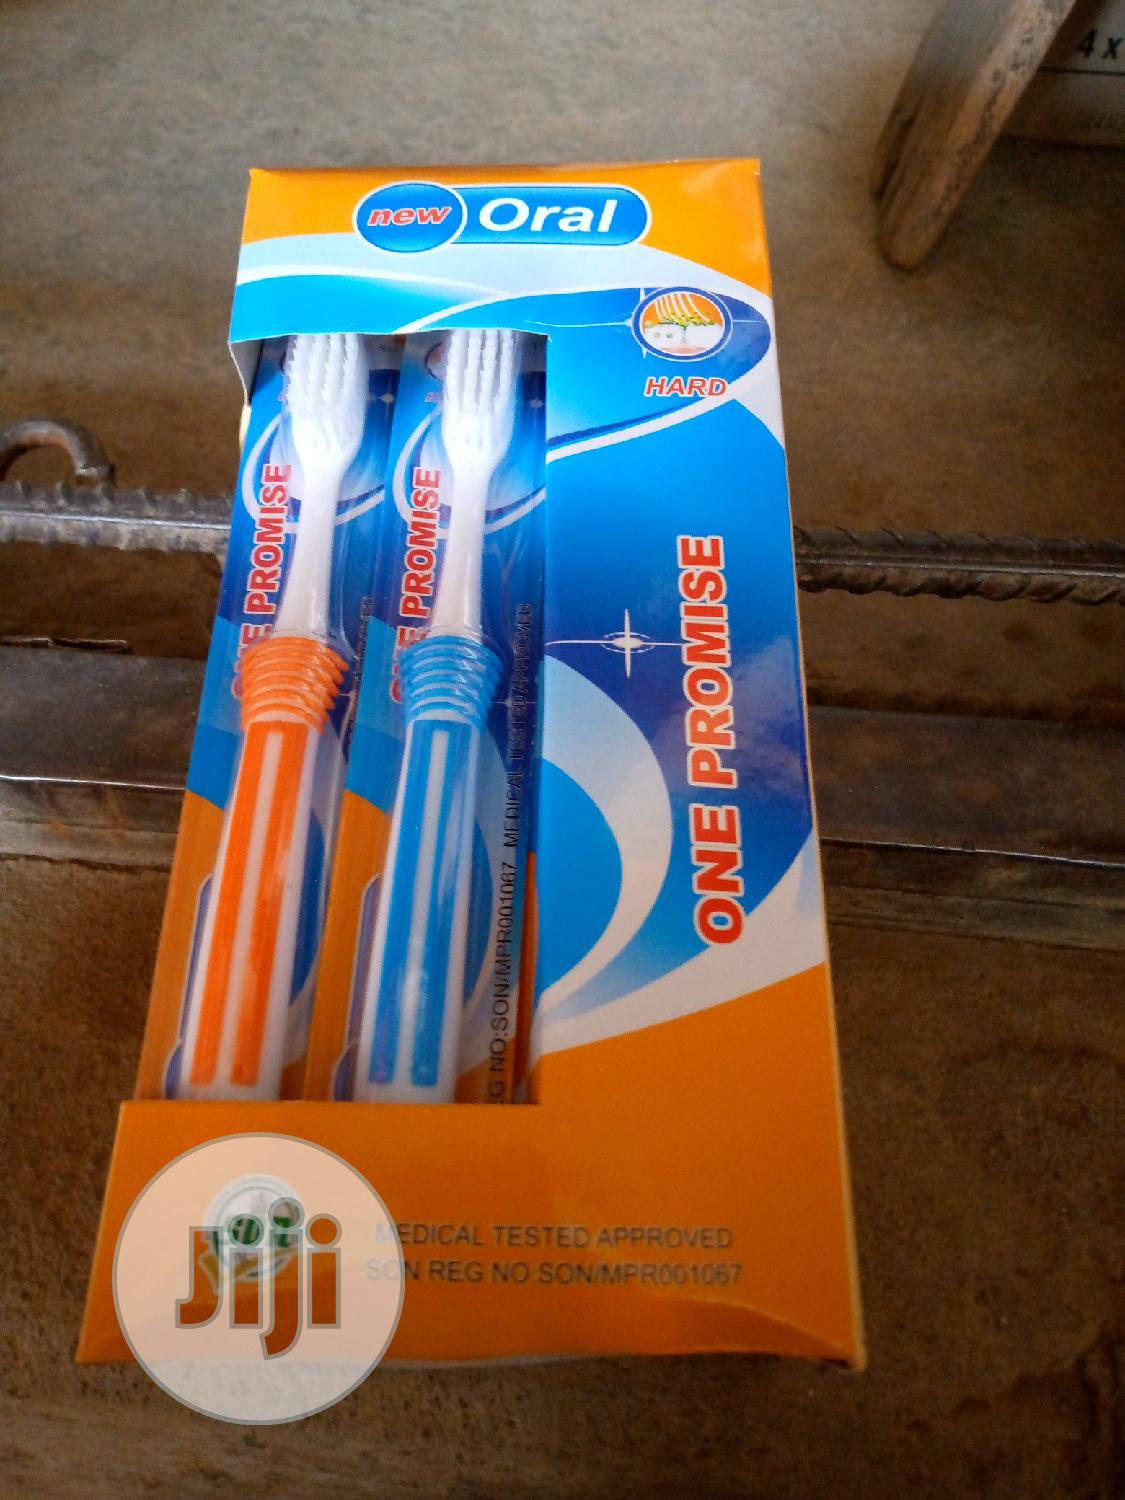 Oral Toothbrush Hard 1 Pack